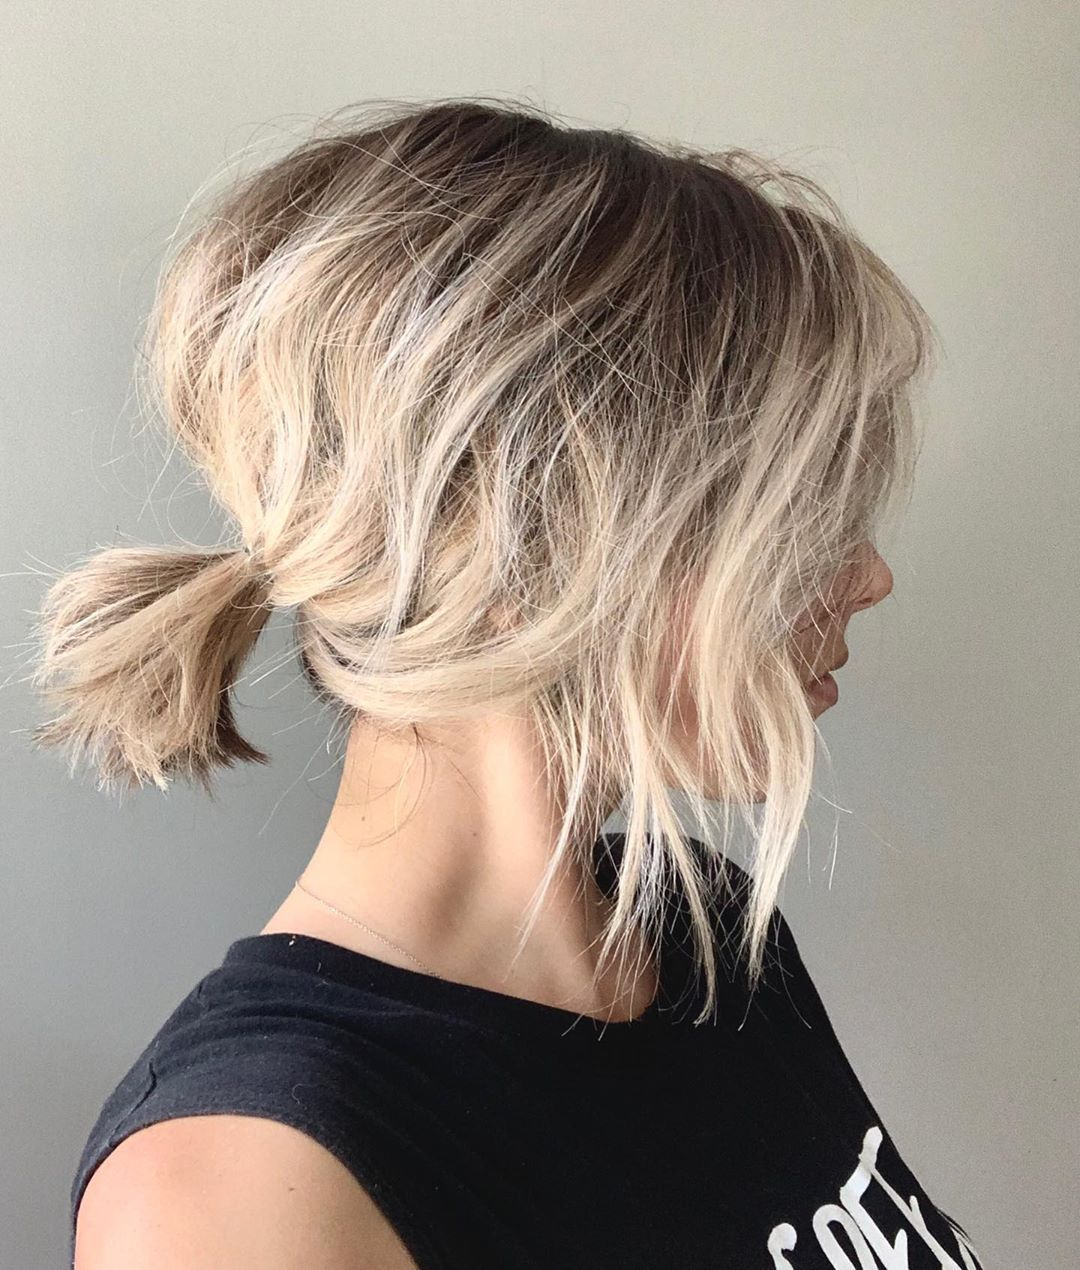 30 Hairstyles To Try In November Messy Blonde Bob Choppy Bob Hairstyles Wavy Bob Hairstyles